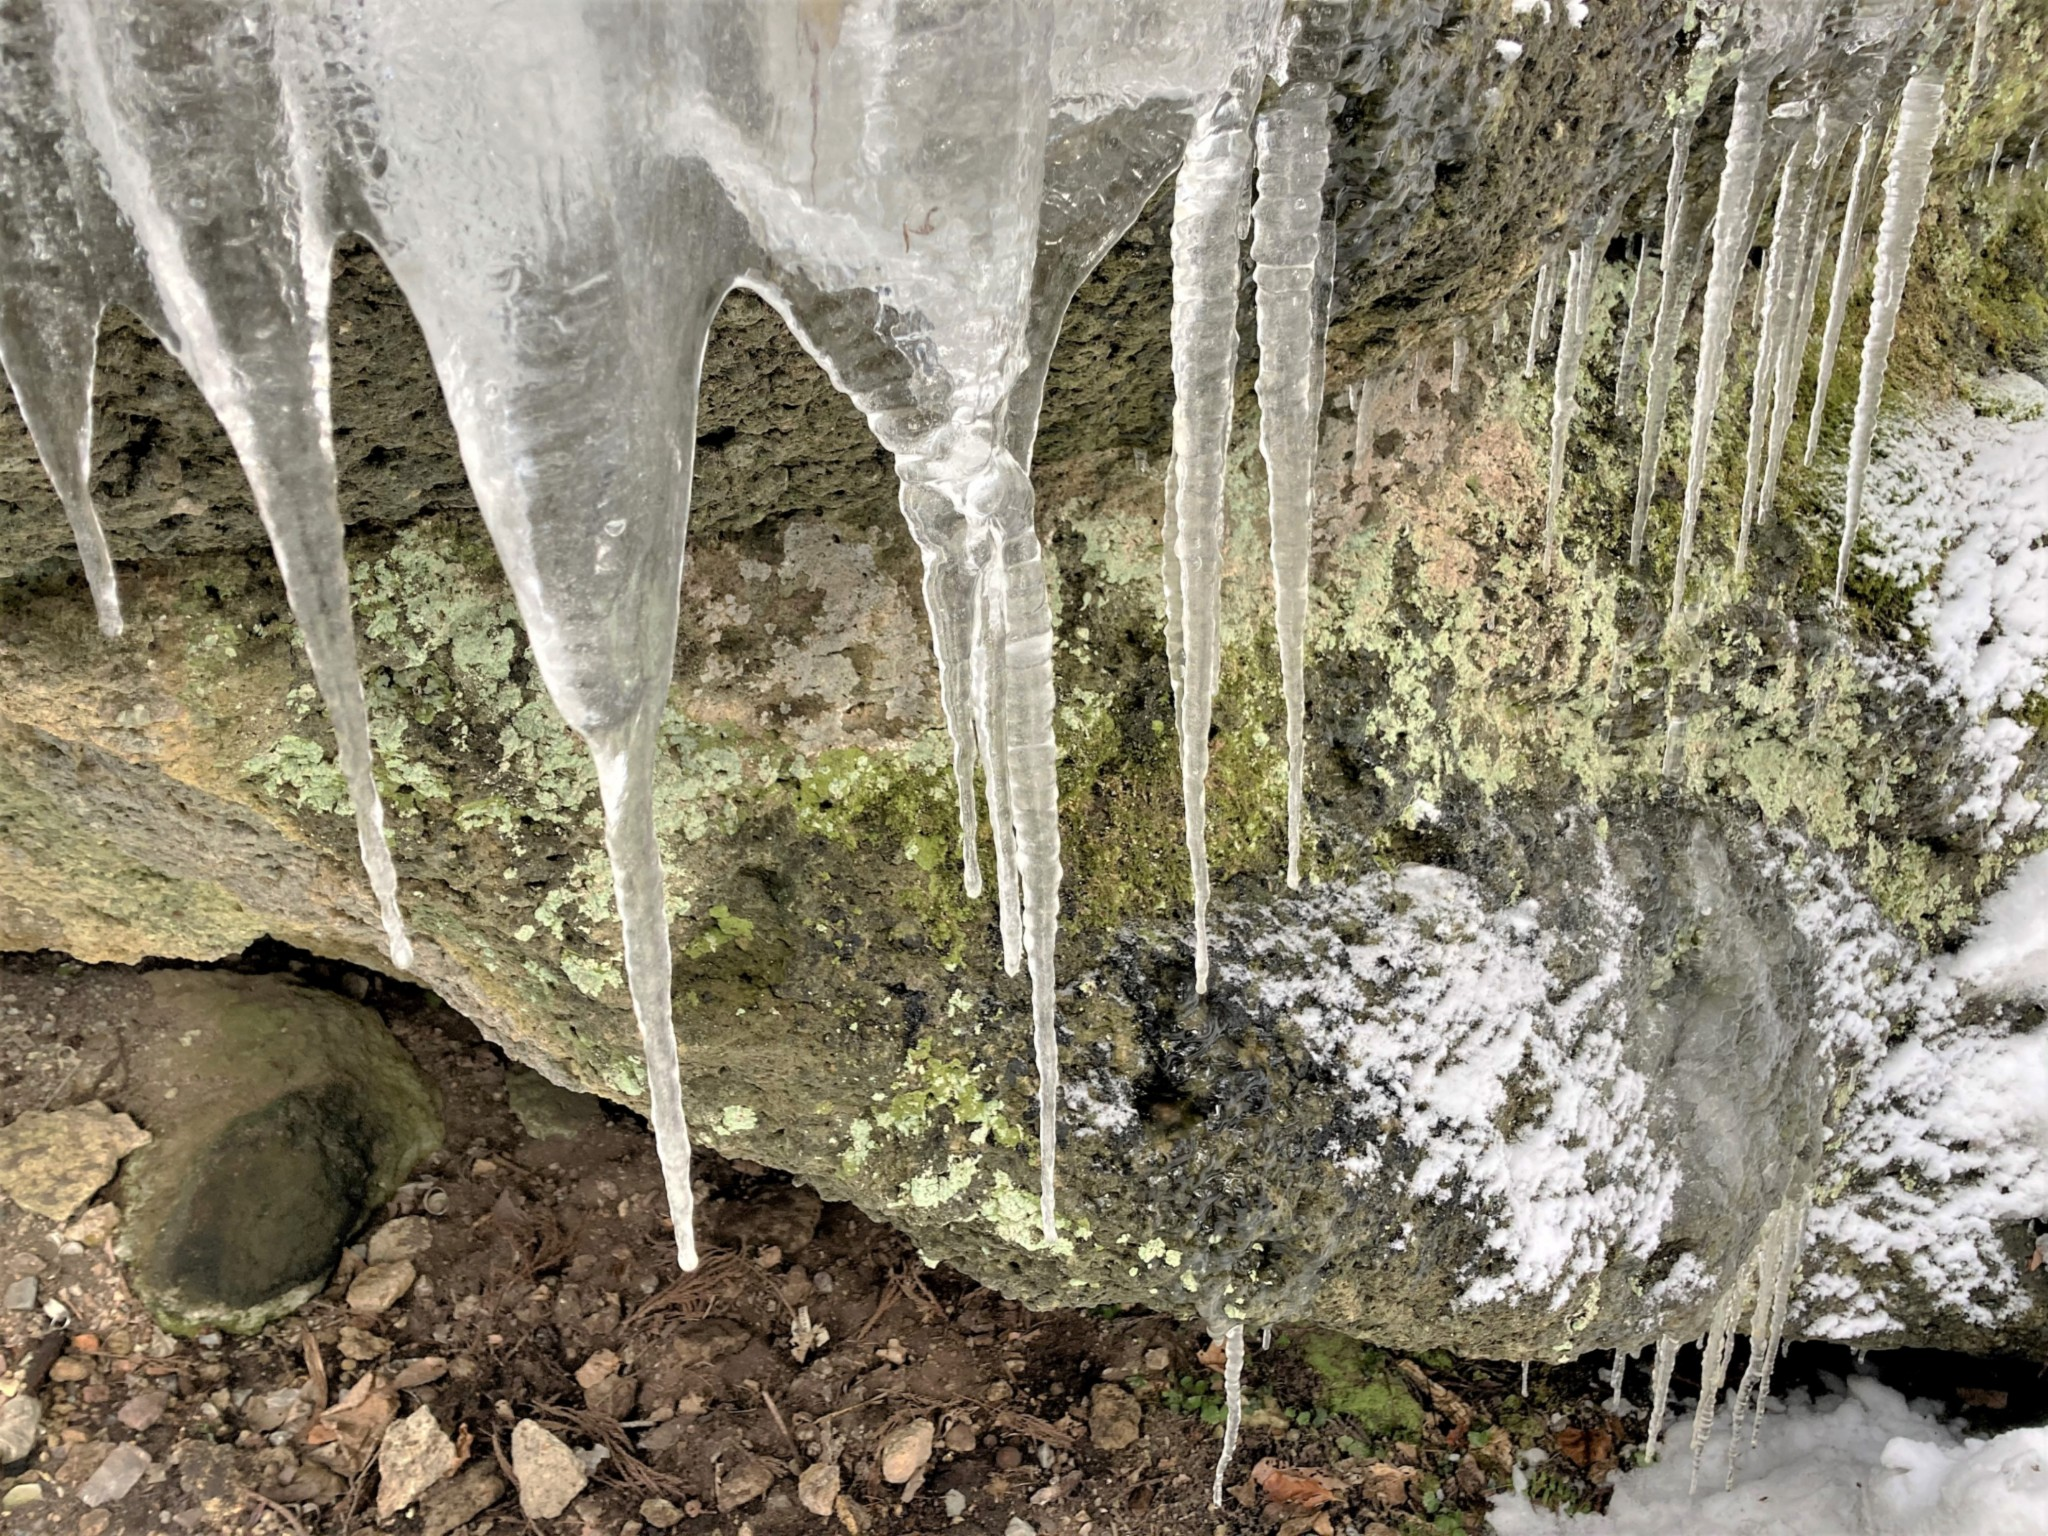 Several large semi-transparent icicles overhanging a moss-covered rock in winter.